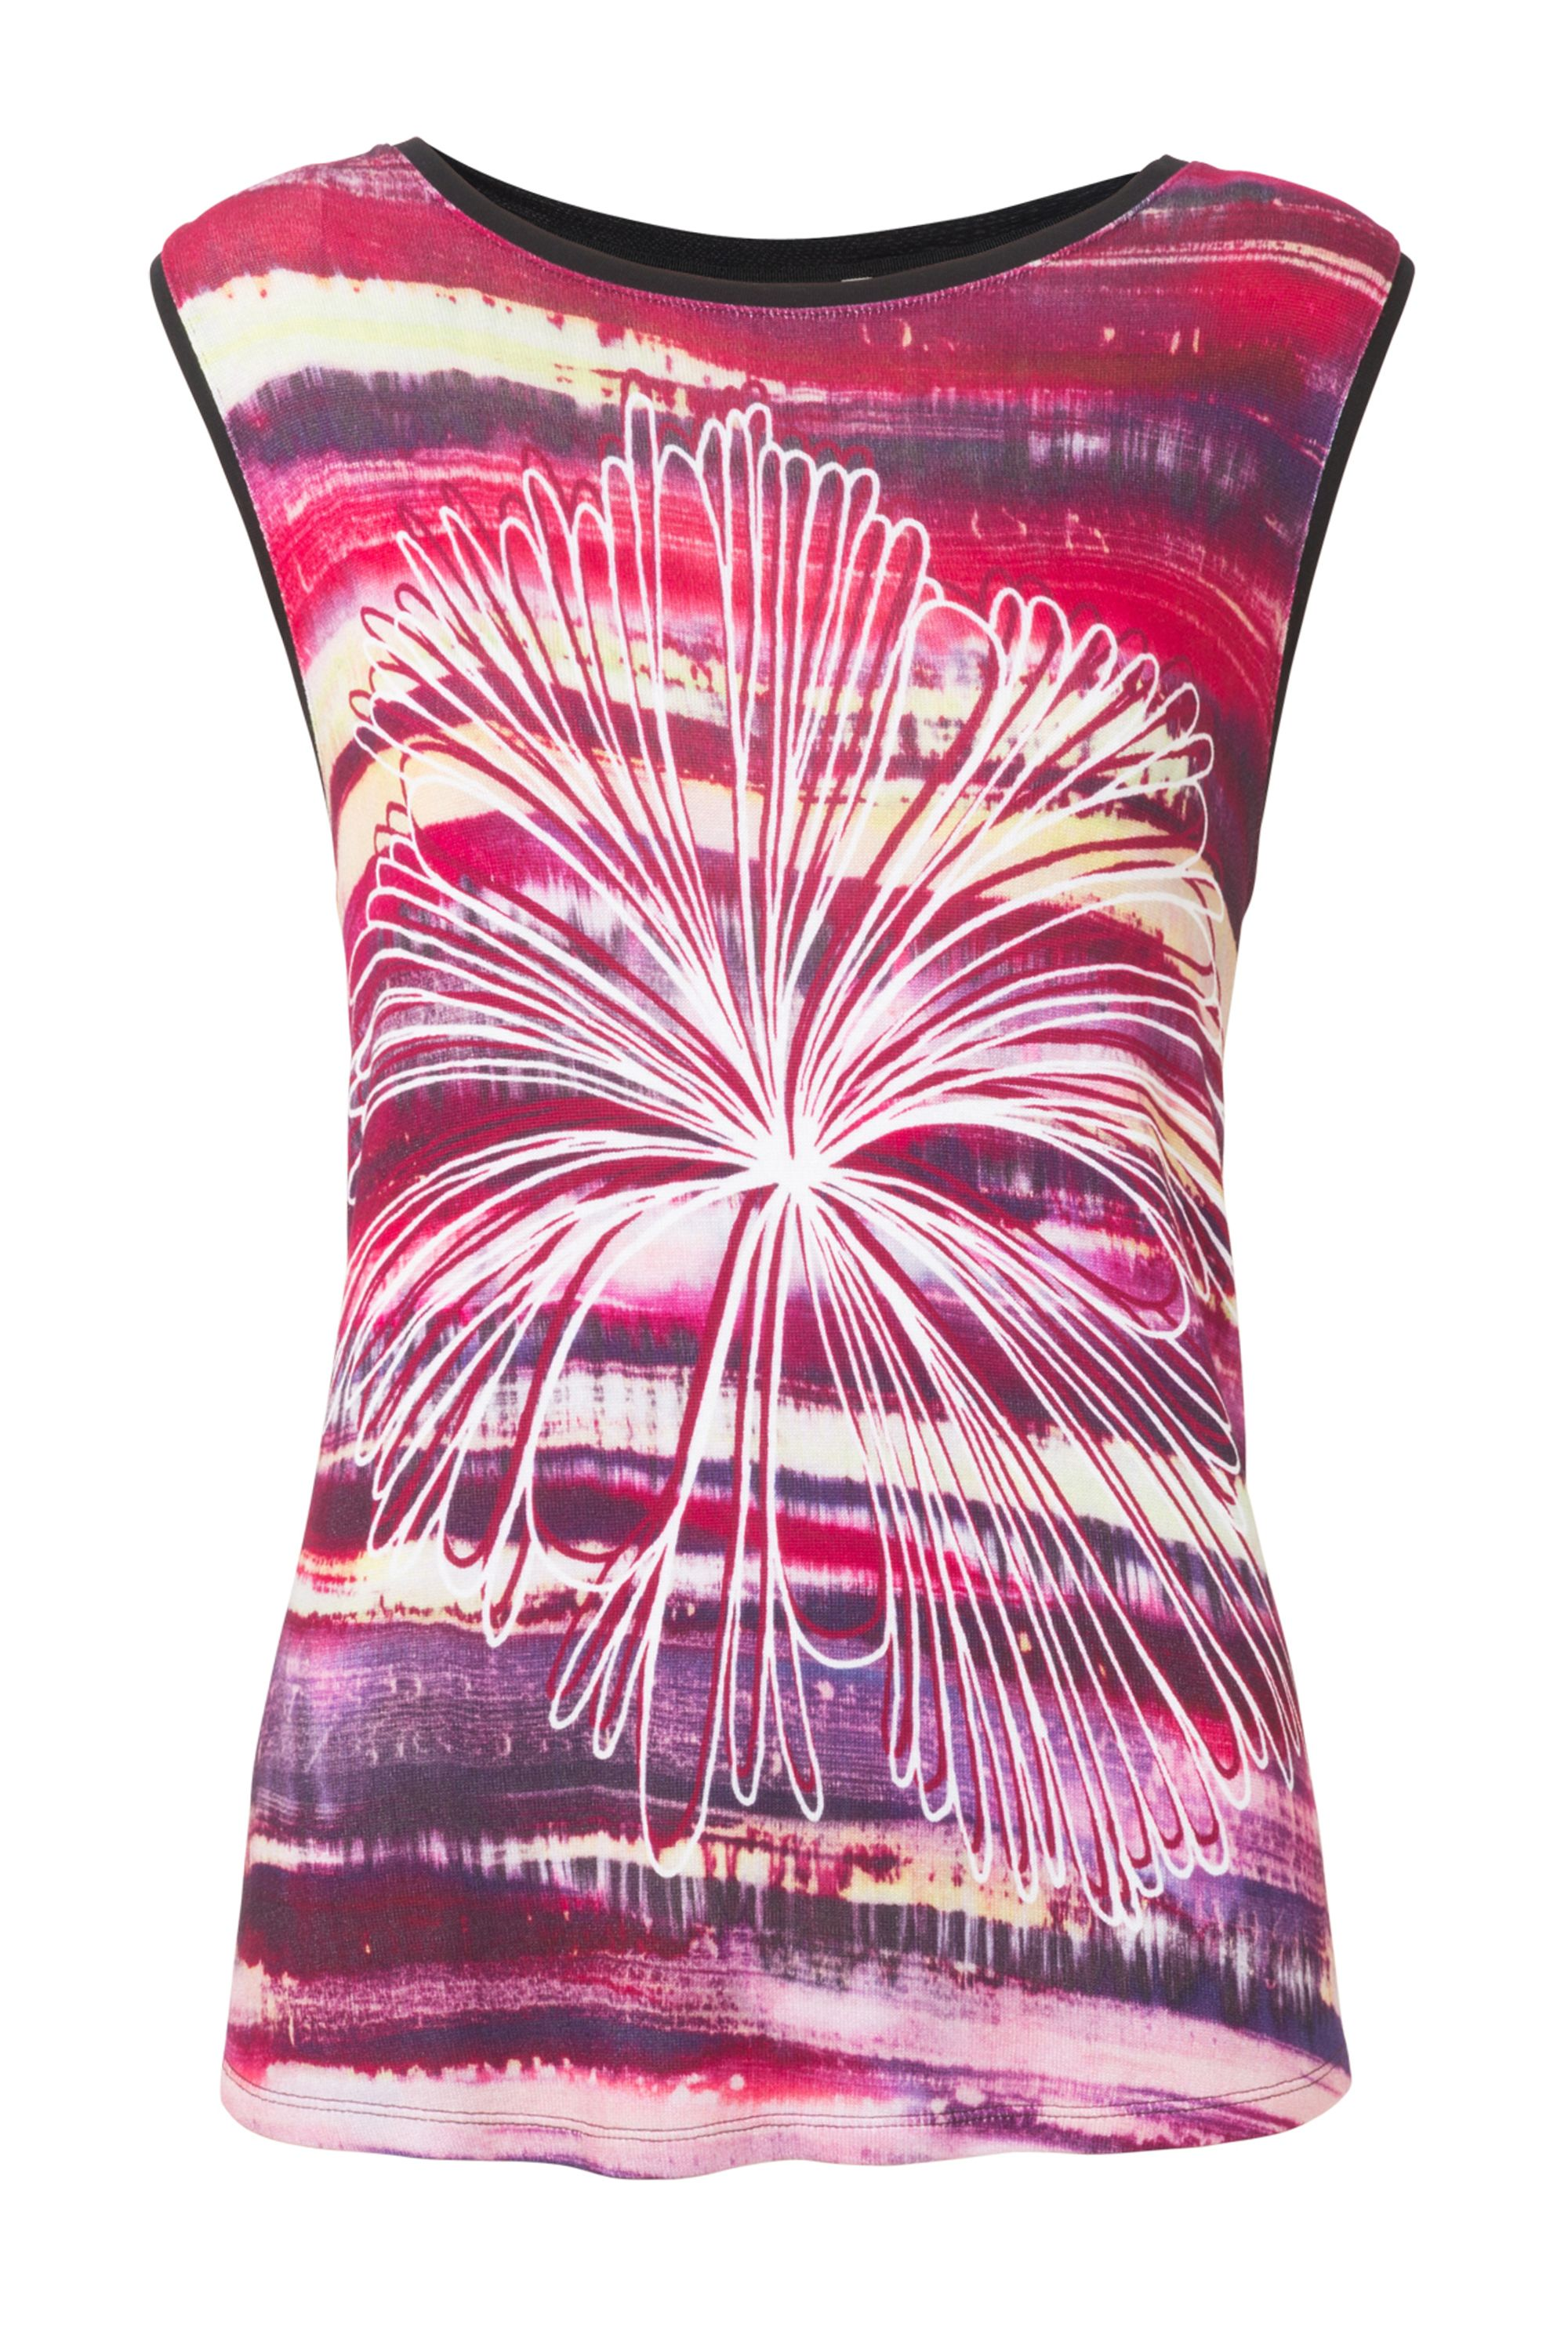 Desigual Carol T-shirt, Purple